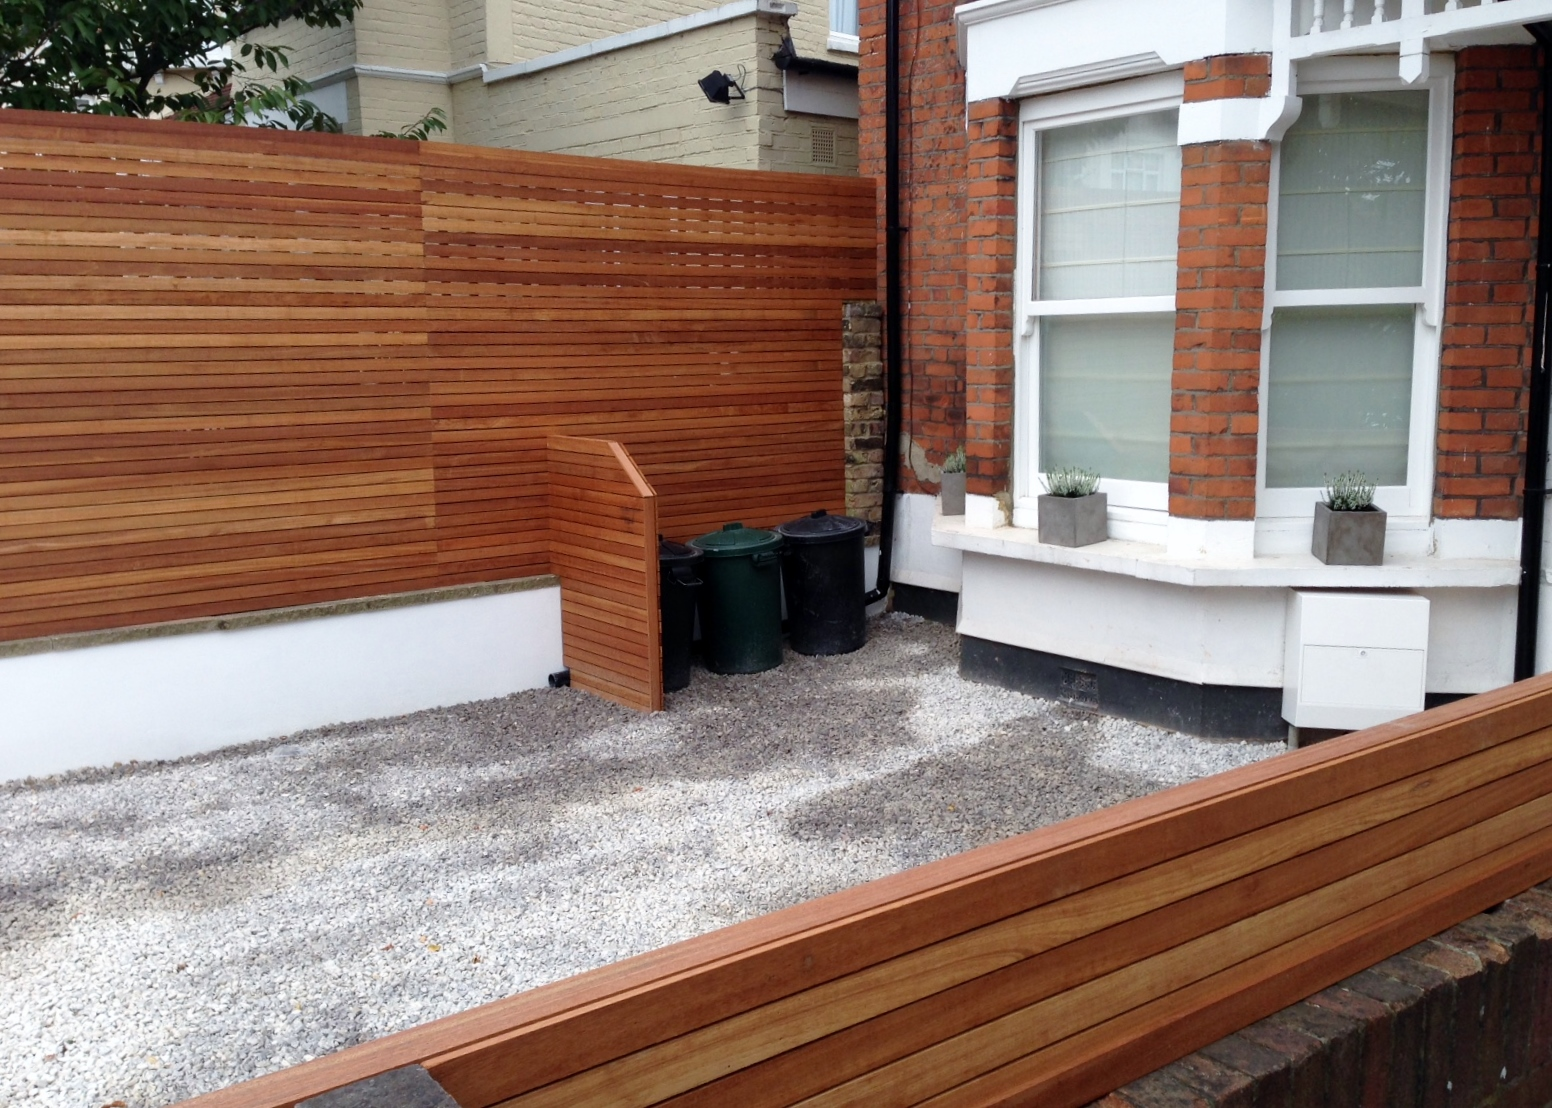 front garden drivewat gravel travertine paving path hardwood privacy screen trellis tooting london (25)